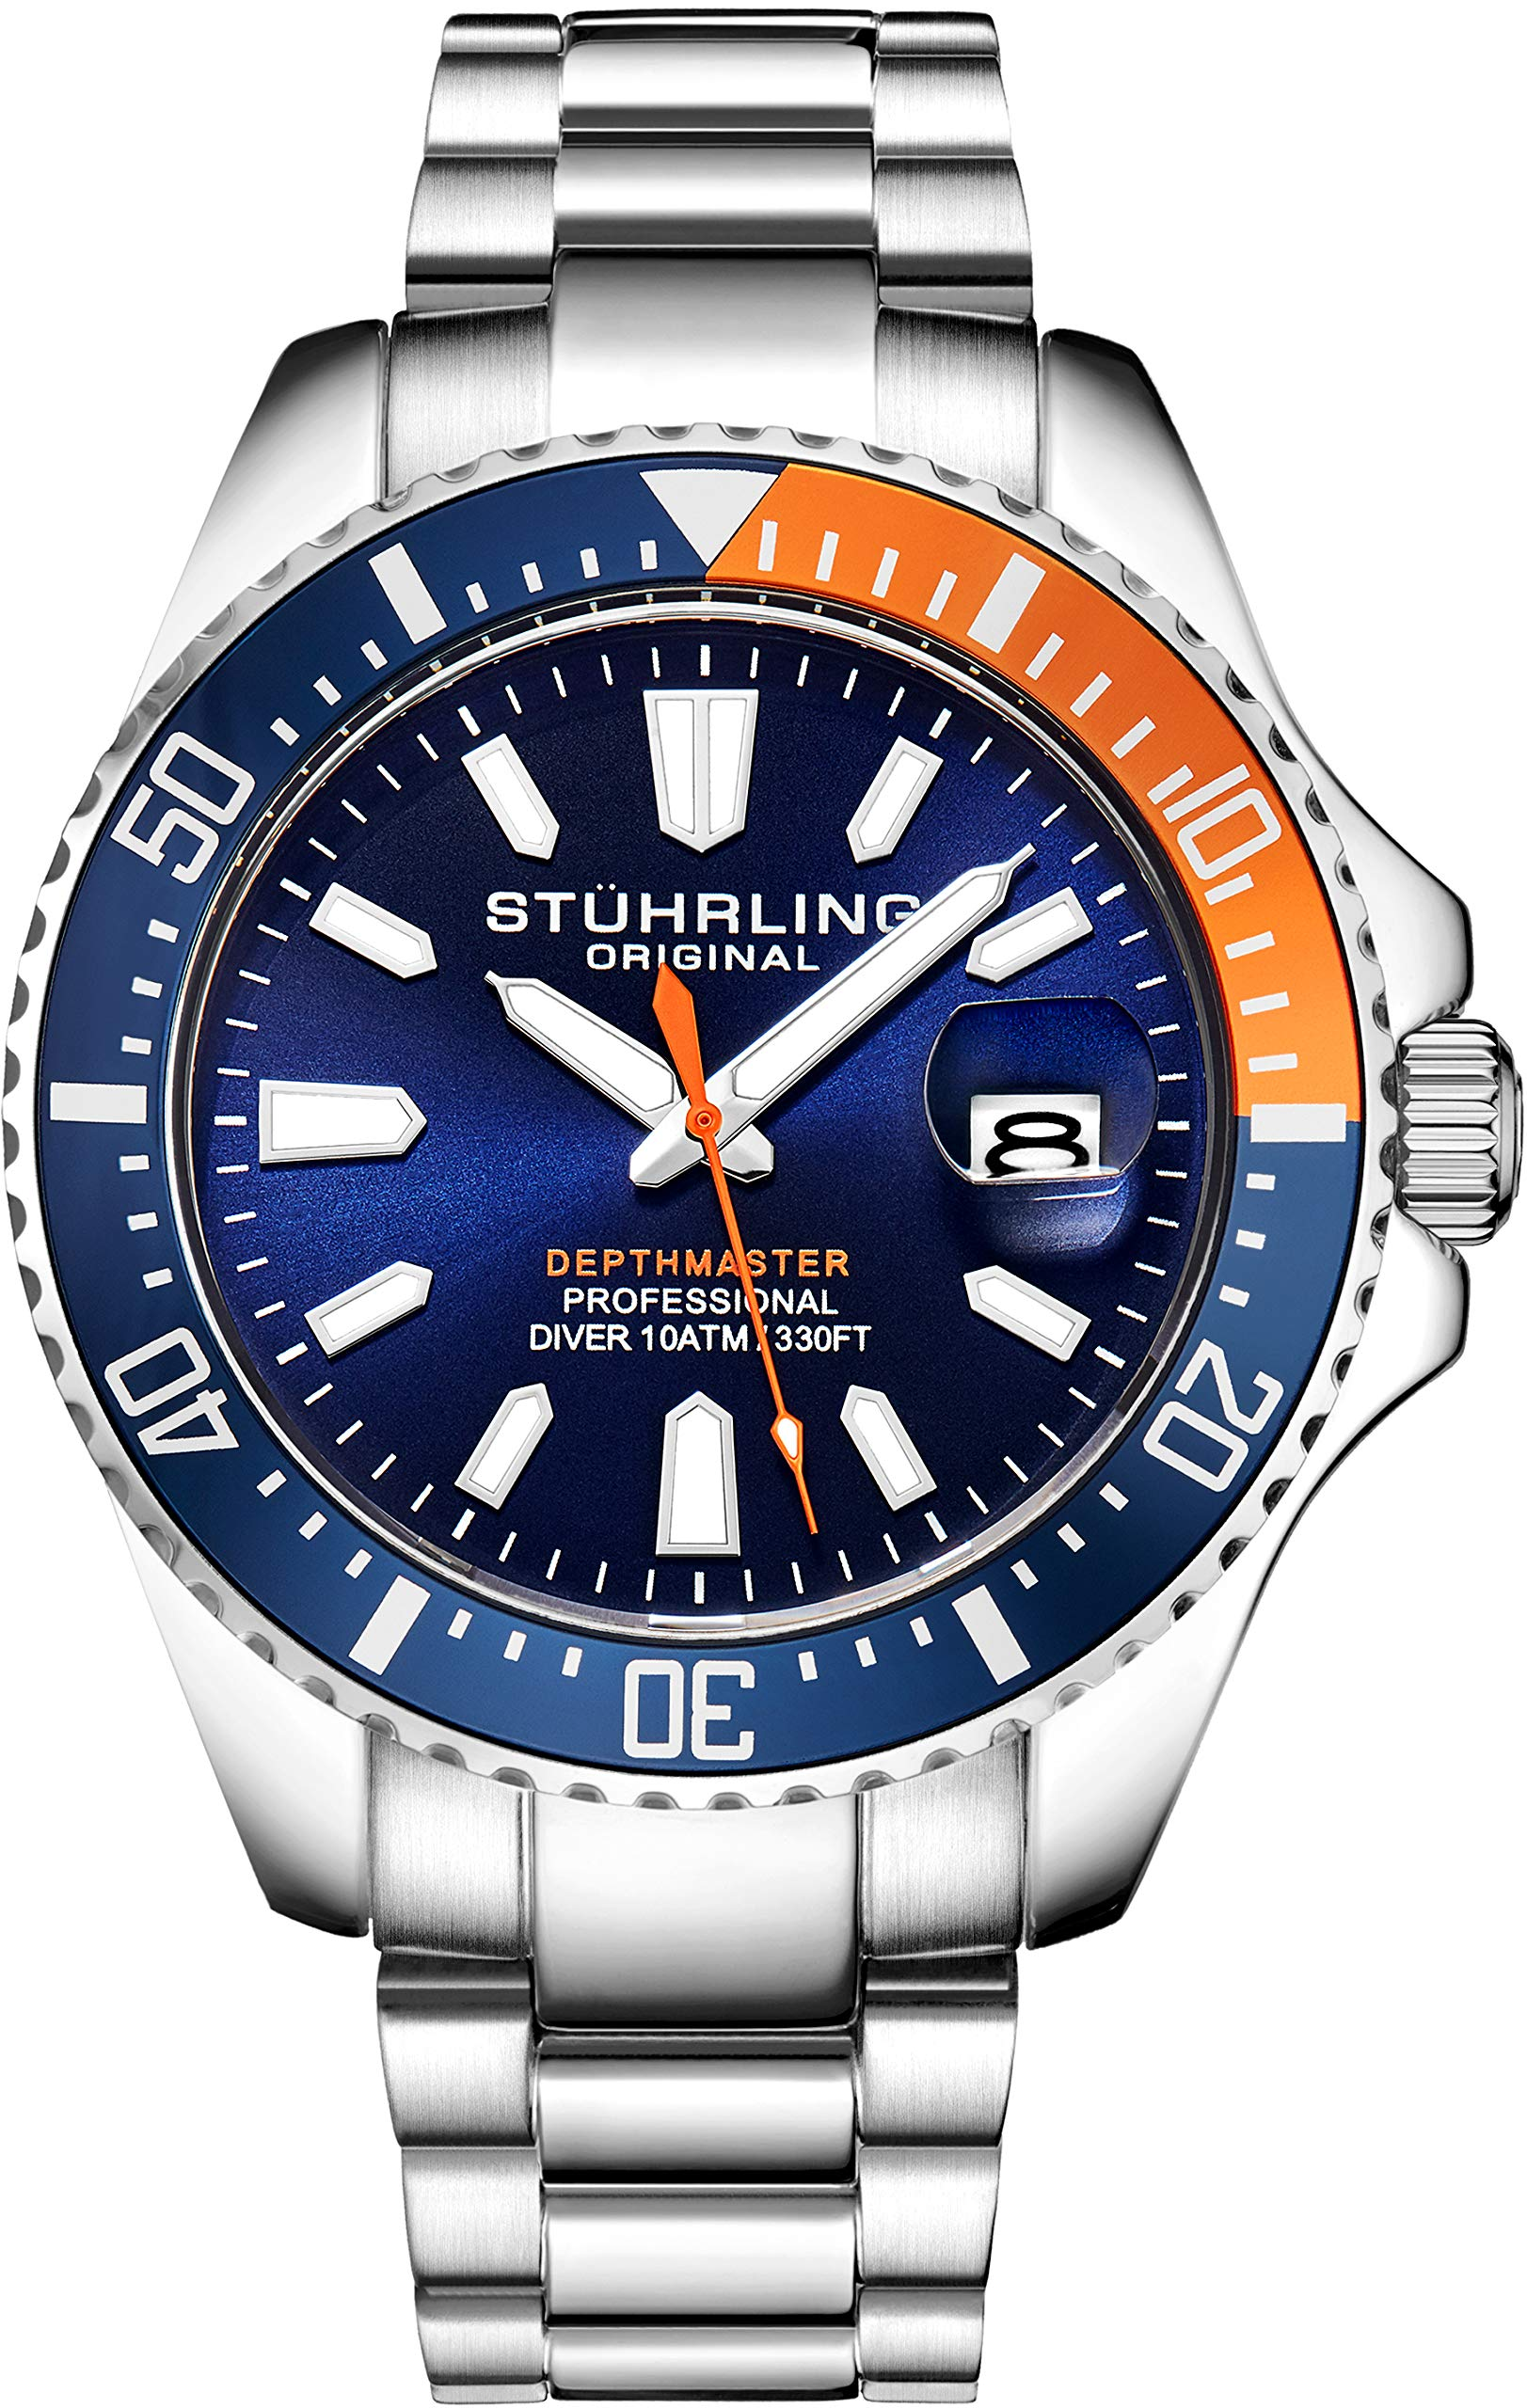 Stuhrling Original Watches for Men-Pro Diver Watch - Sports Watch for Men with Screw Down Crown for 330 Ft. of Water Resistance - Analog Dial, Quartz Movement - Mens Watches Collection (Blue/Orange) by Stuhrling Original